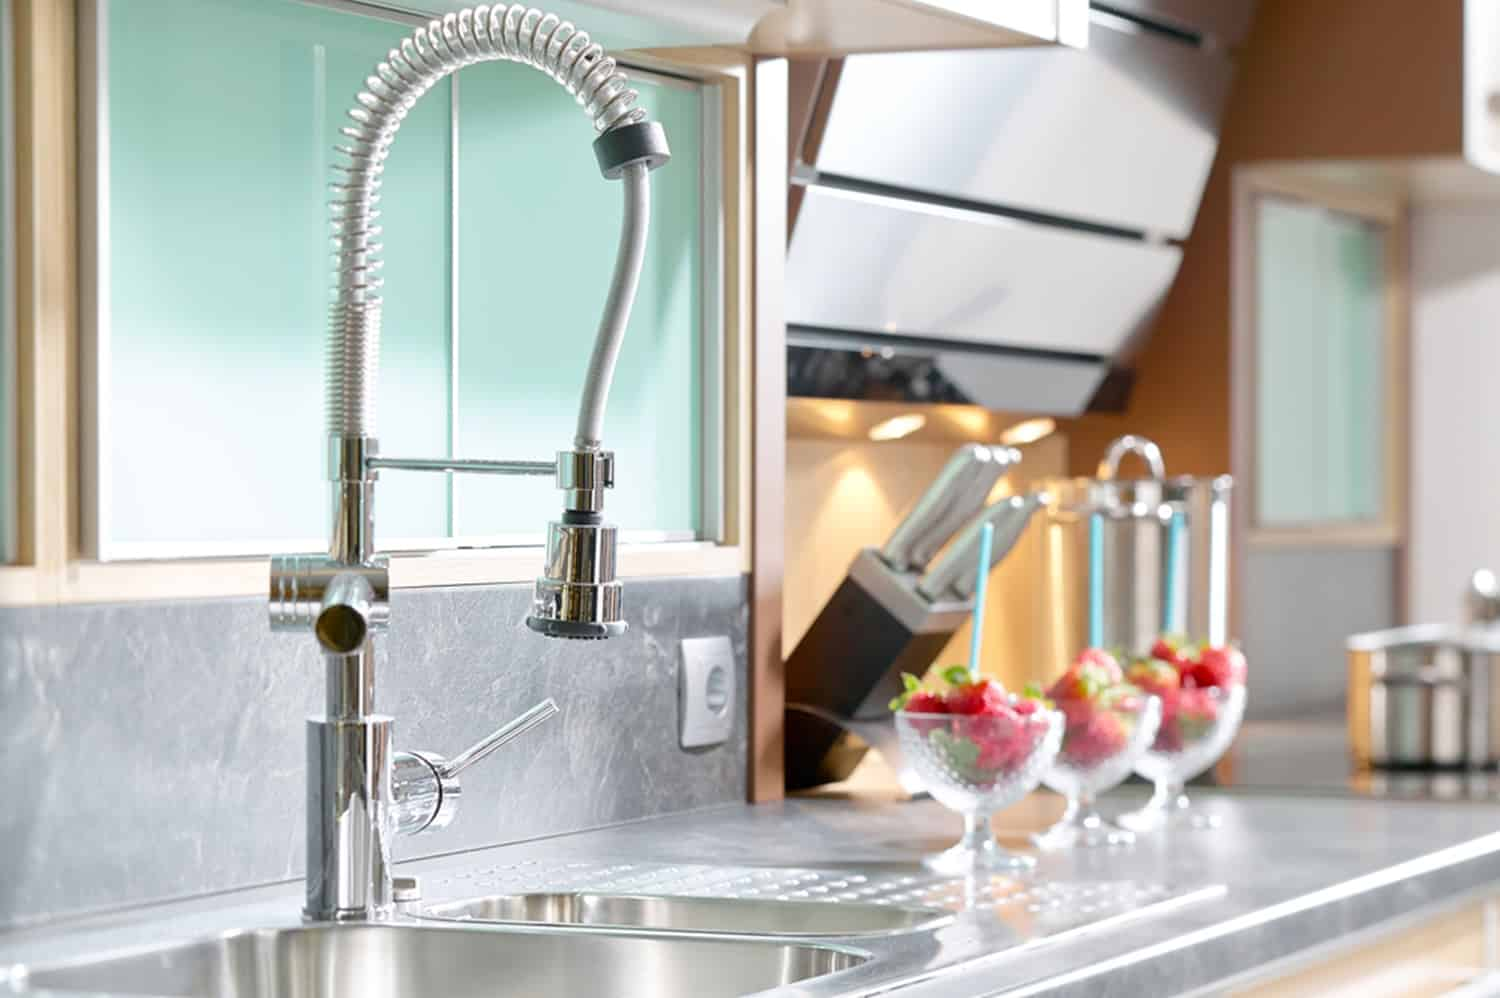 10 Best Commercial Kitchen Faucets - (Reviews & Guide)